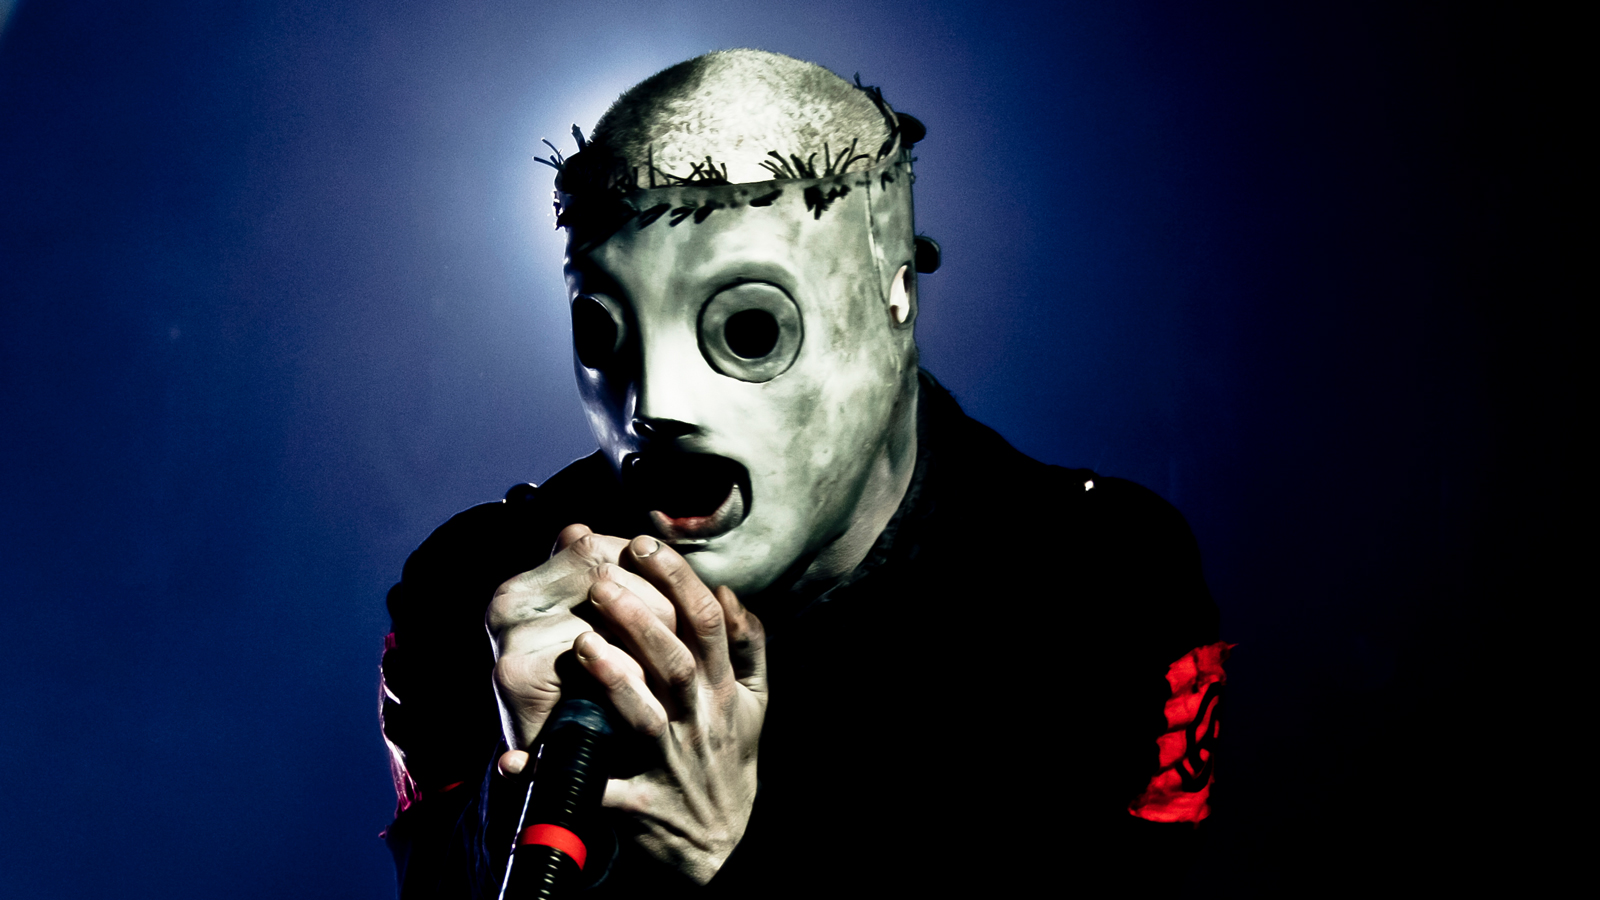 slipknot s all hope is gone the story of defiance behind band s